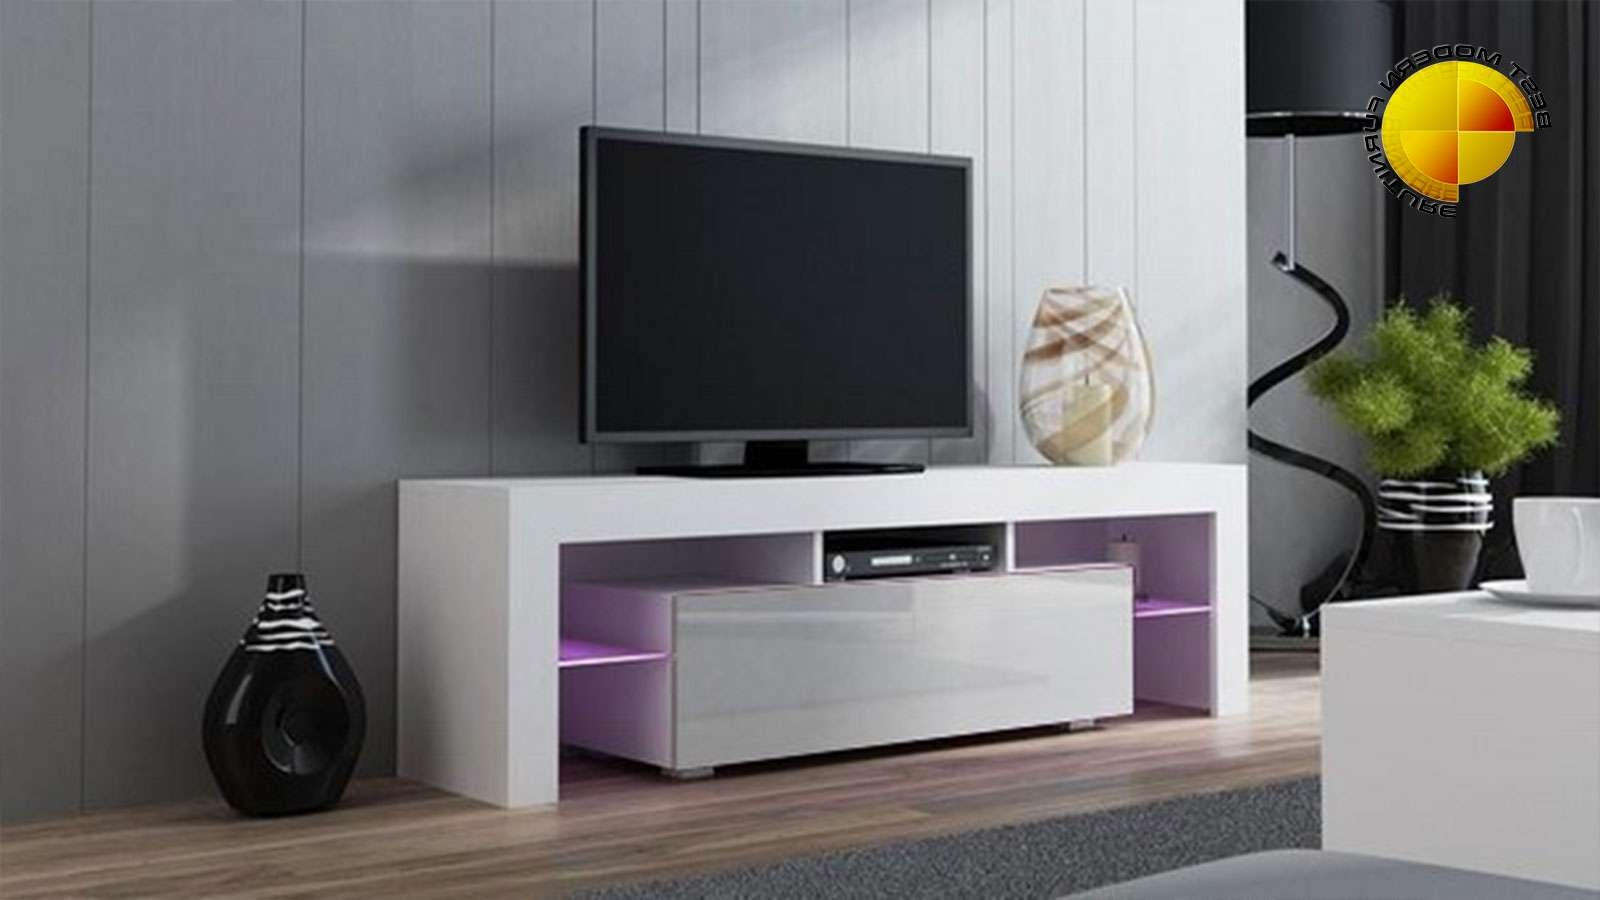 Modern Tv Stand 160Cm High Gloss Cabinet Rgb Led Lights White Unit Within White Modern Tv Stands (View 7 of 15)